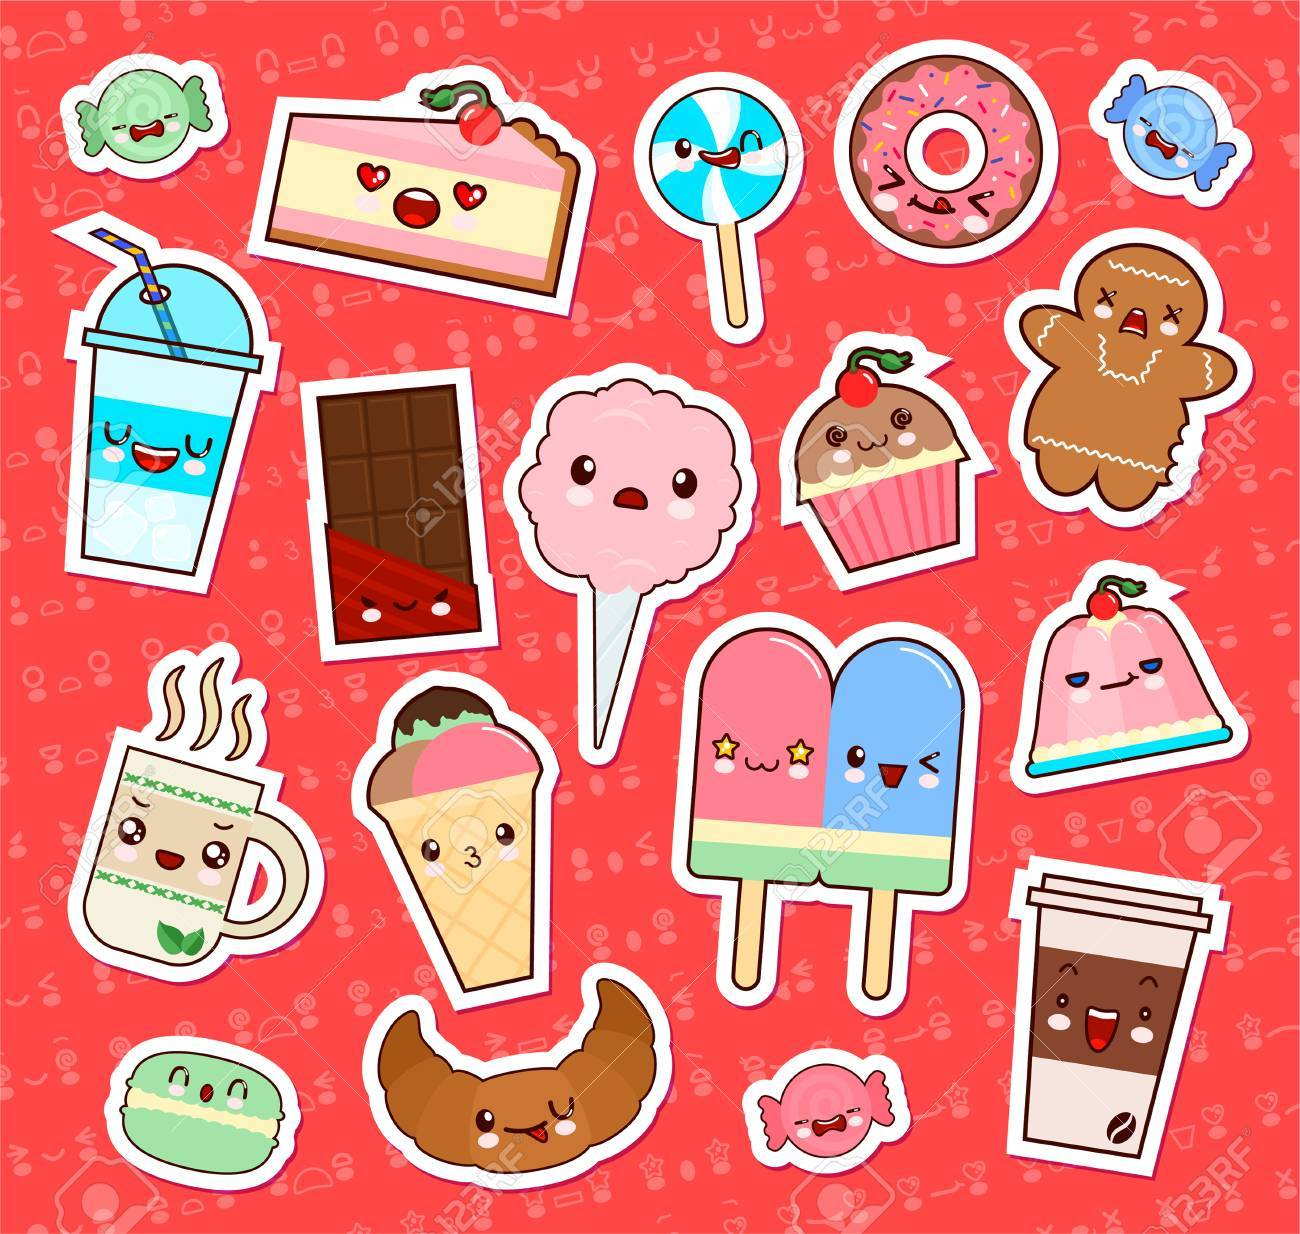 Wonderful Set Of Cute Kawaii Food Emoticon Stickers. Cupcake, Ice Cream, Donuts,